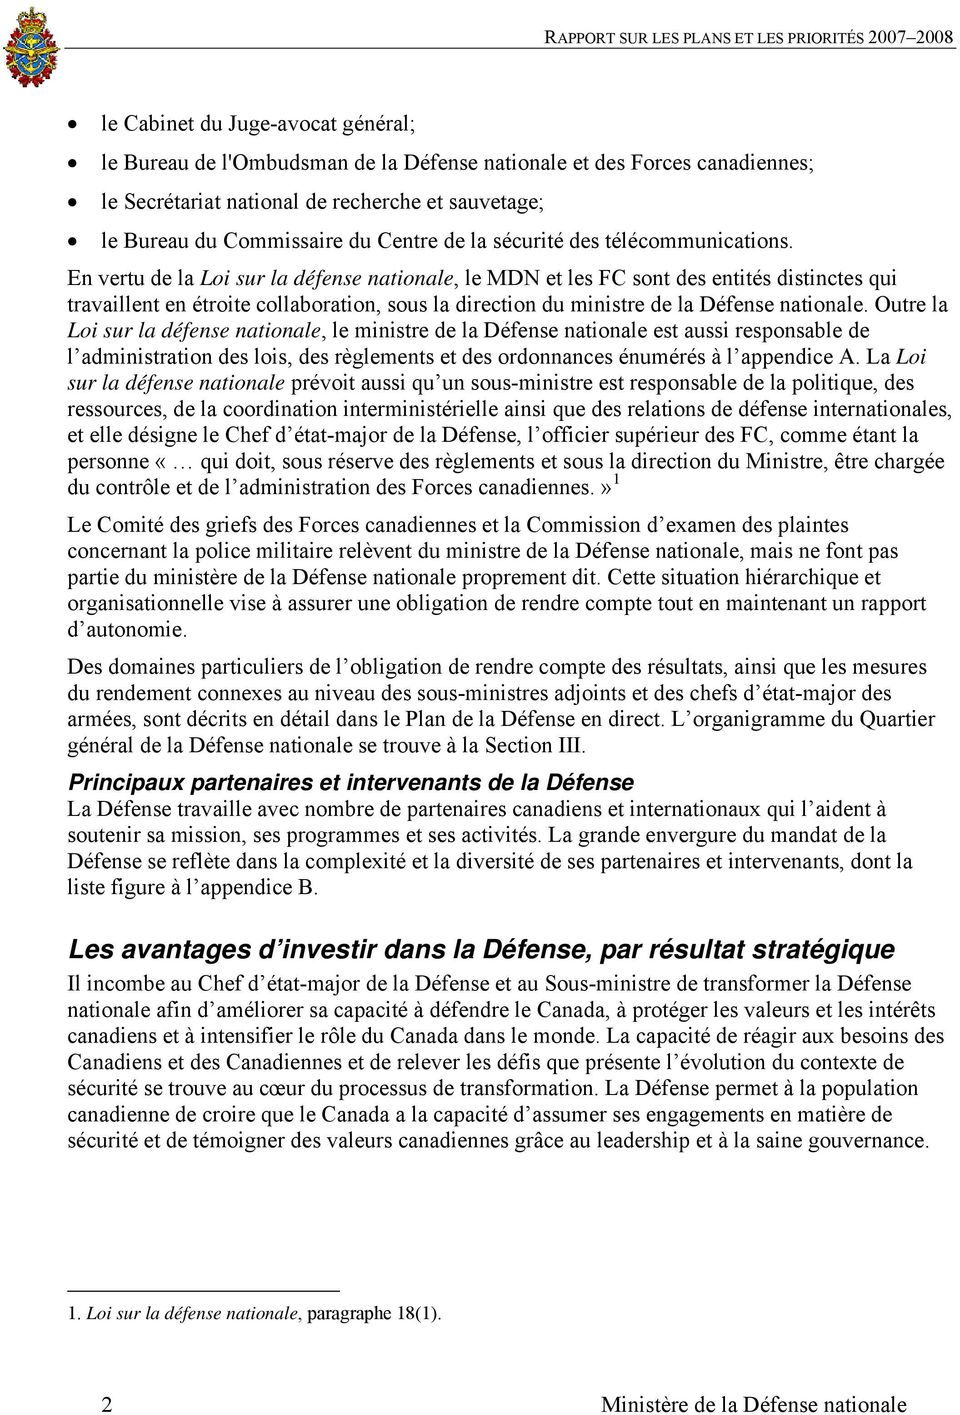 En vertu de la Loi sur la défense nationale, le MDN et les FC sont des entités distinctes qui travaillent en étroite collaboration, sous la direction du ministre de la Défense nationale.